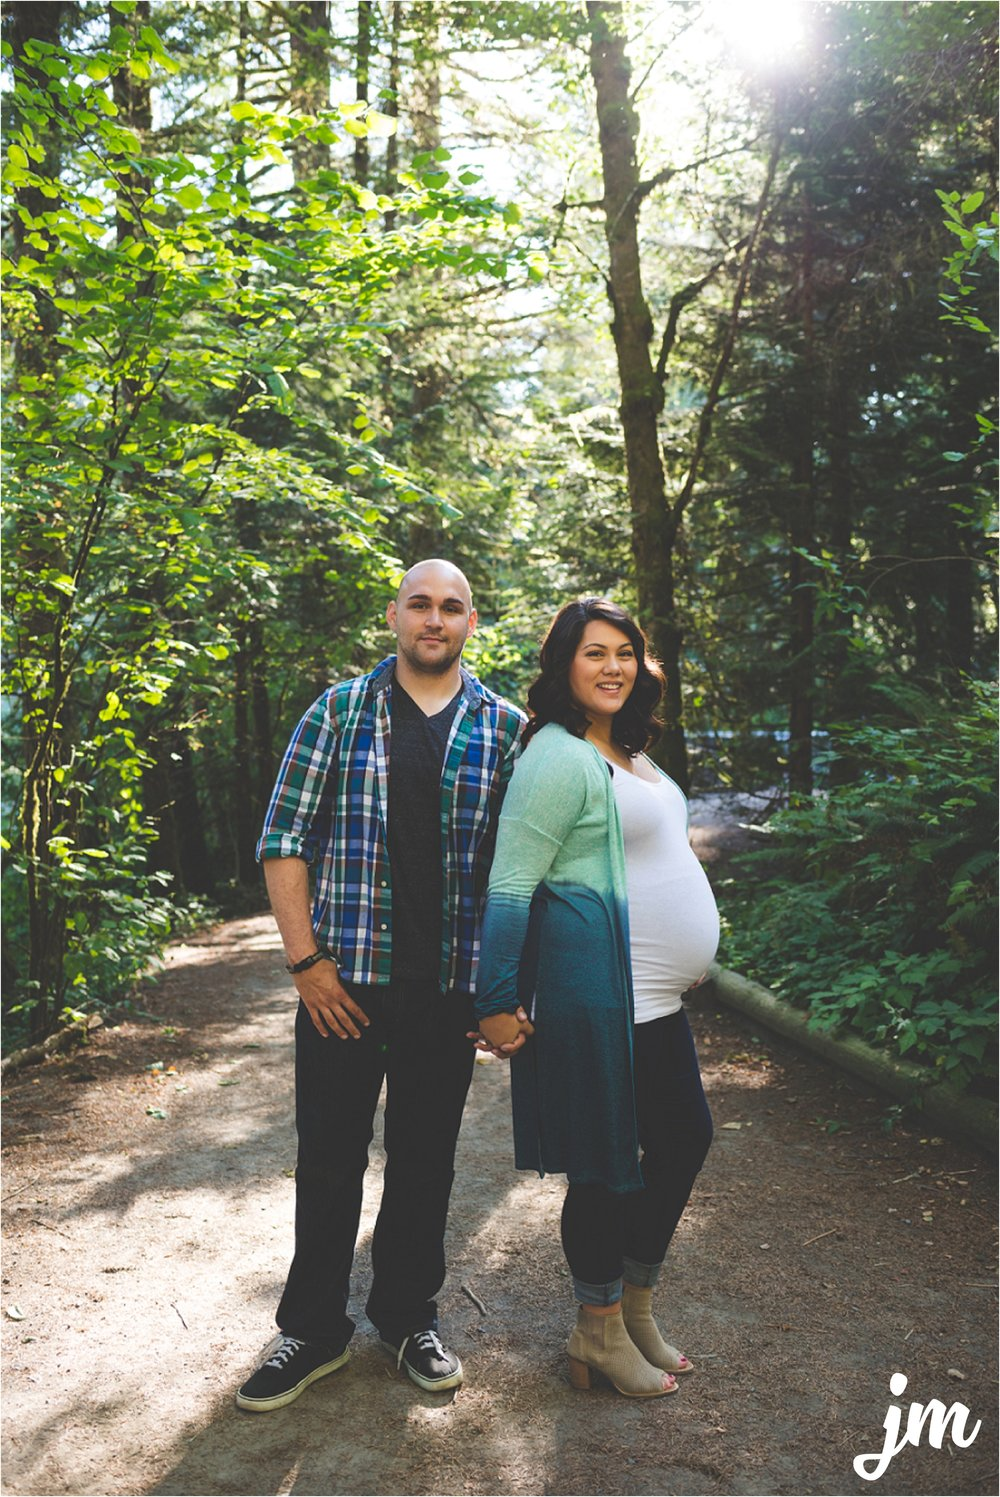 jannicka-mayte-moulton-falls-park-maternity-session-pacific-northwest-lifestyle-photographer_0002.jpg